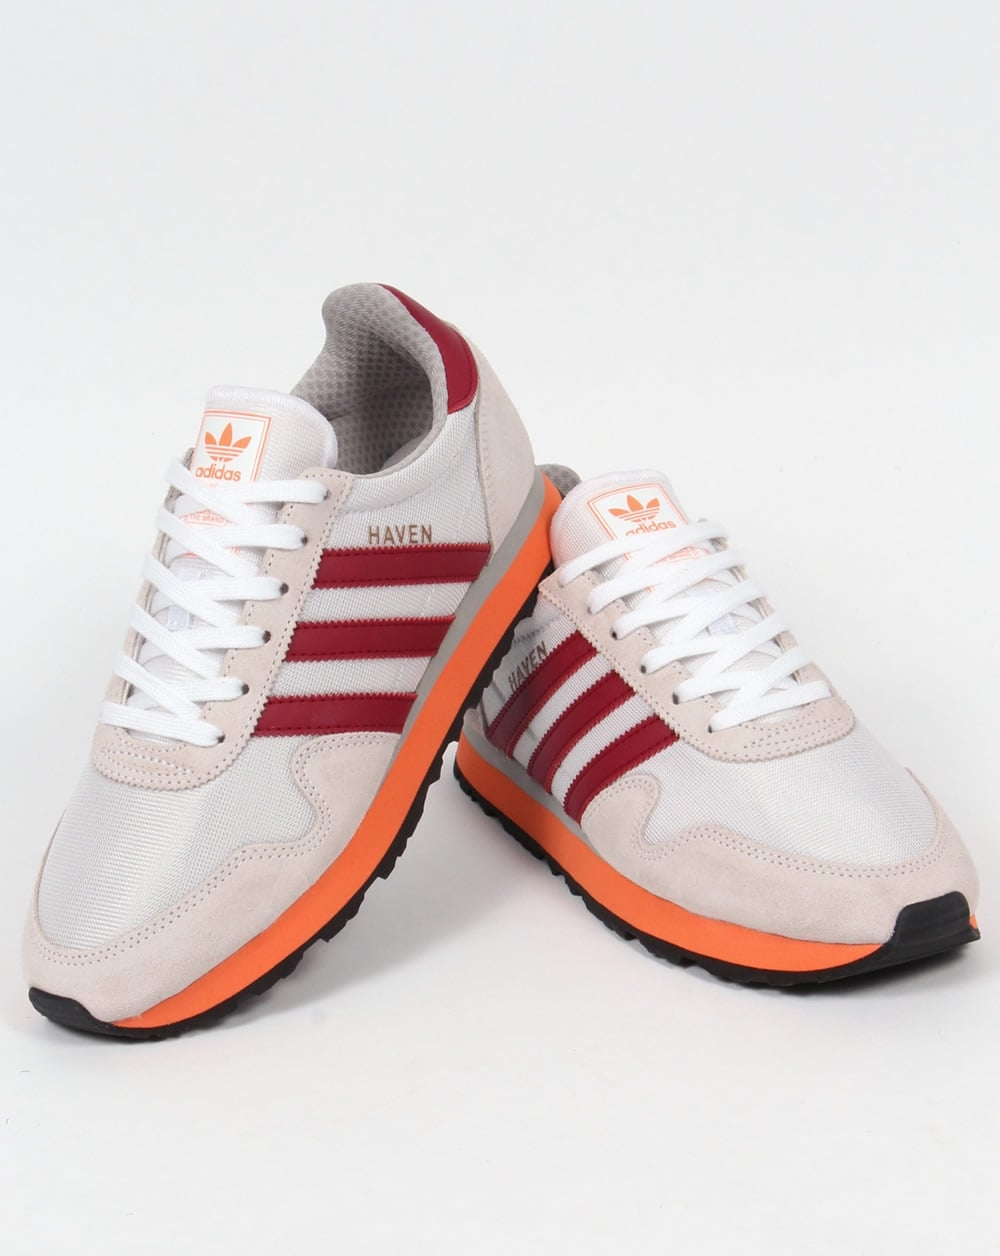 Adidas Originals Originals Top Ten Low Sneaker In Black: Adidas Haven Trainers White/Burgundy/Orange,originals